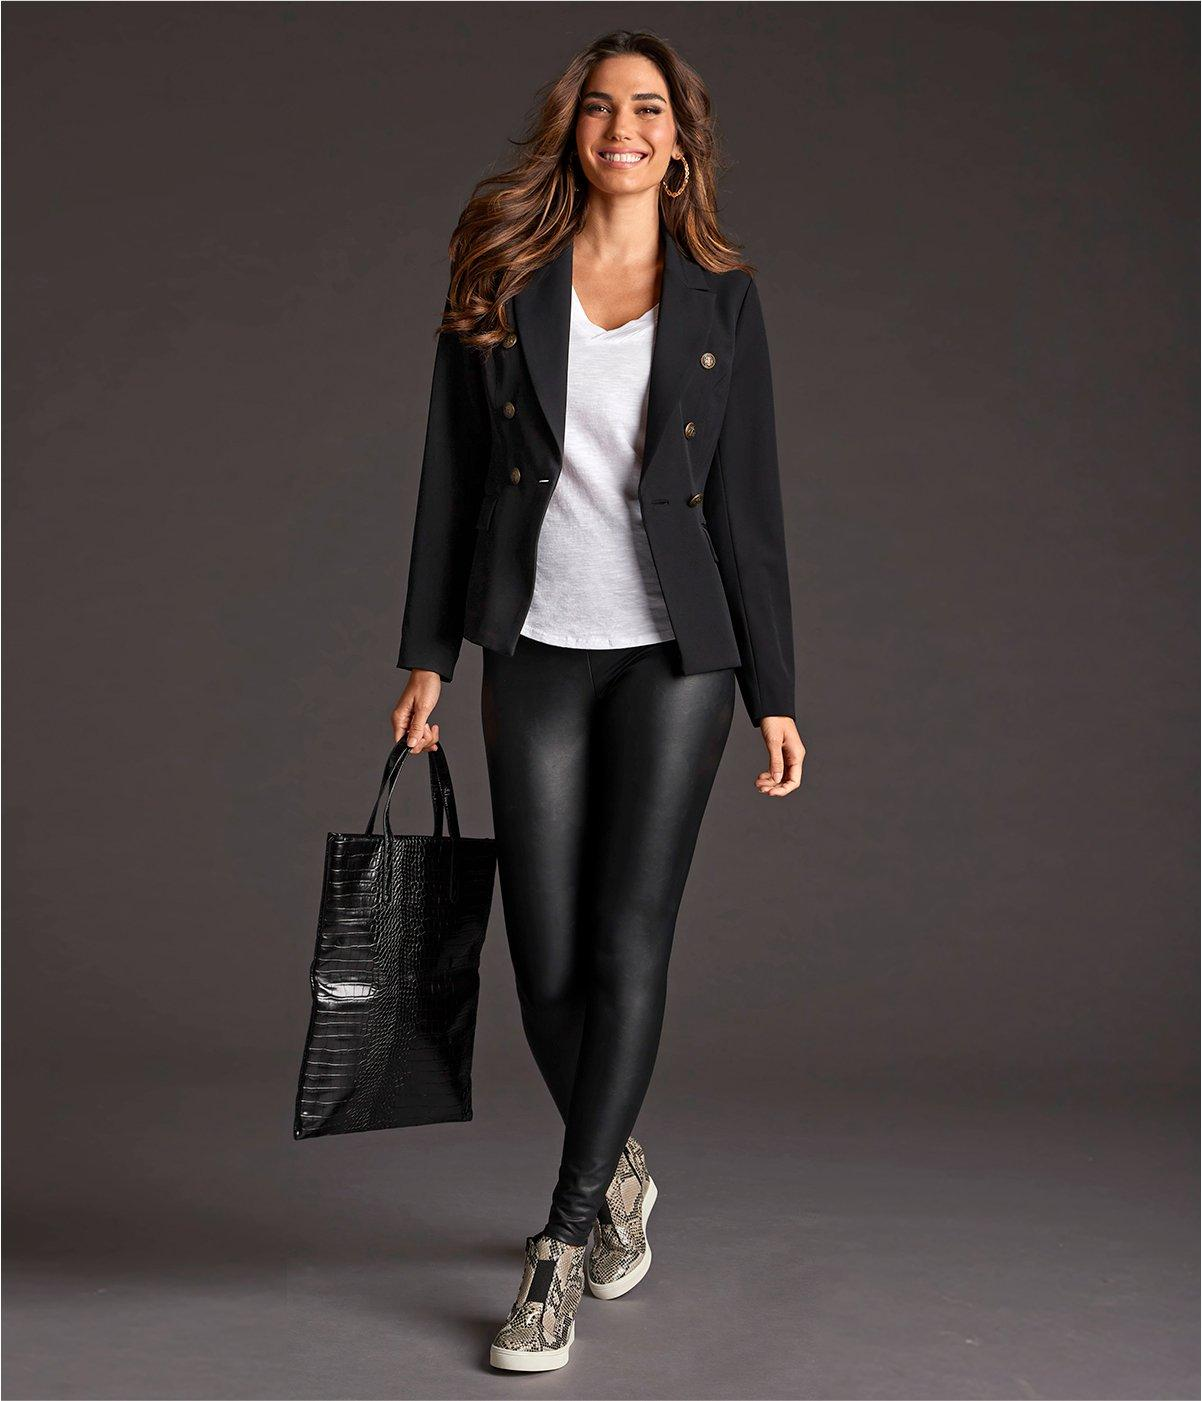 model wearing a black double-breasted blazer, white v-neck tee, black faux leather leggings, snakeskin print sneaker wedges, and a black crocodile bag.